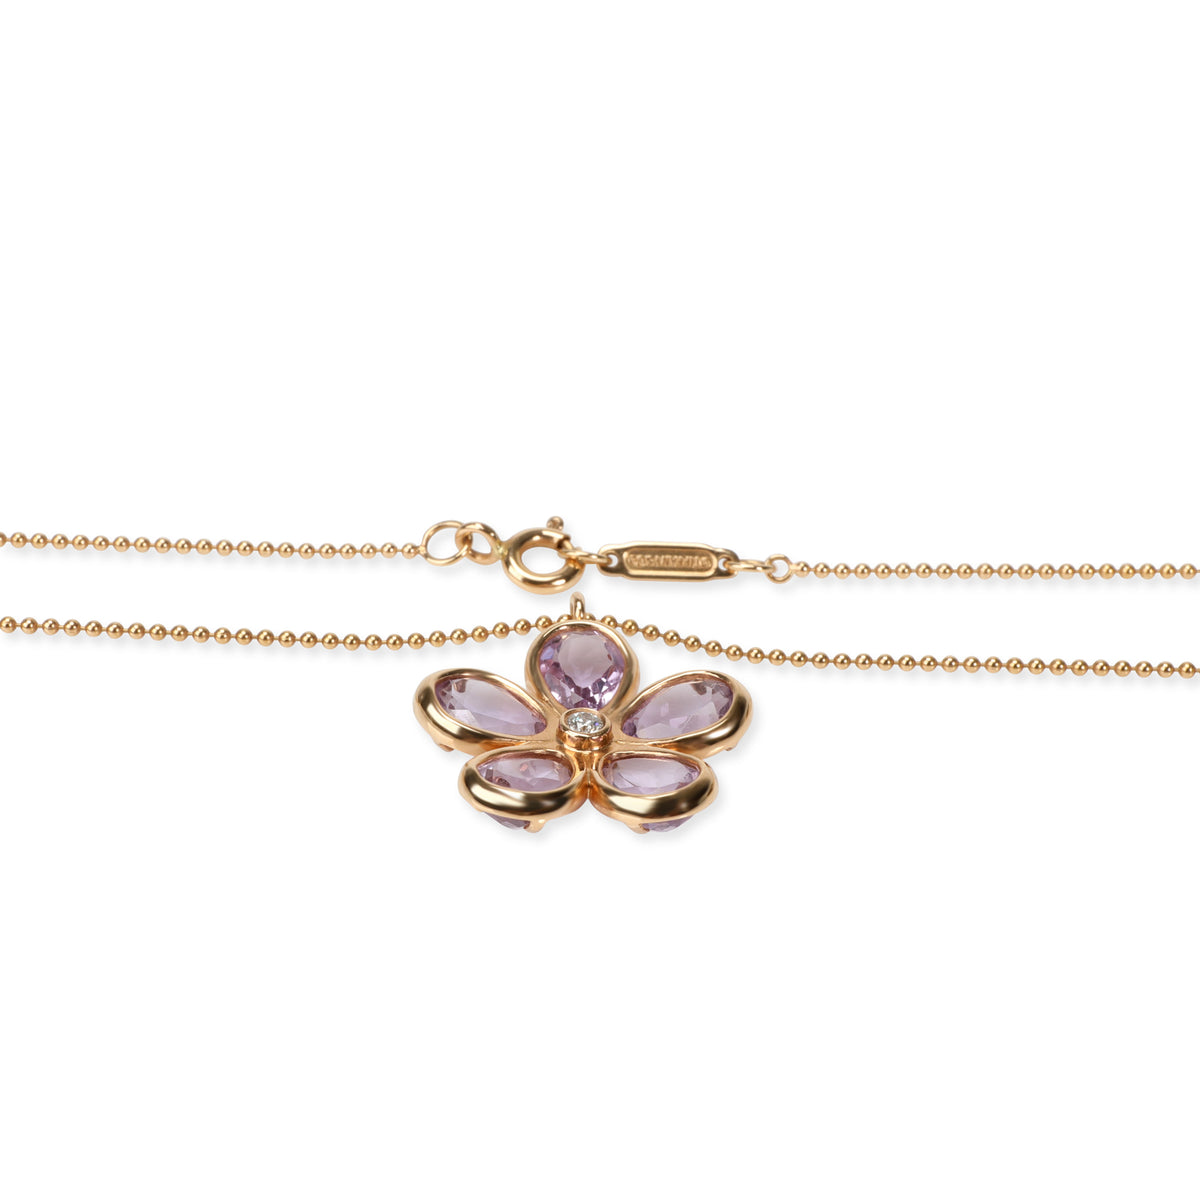 Tiffany & Co. Enchant Diamond Amethyst Necklace in 18K Rose Gold 0.02 CT